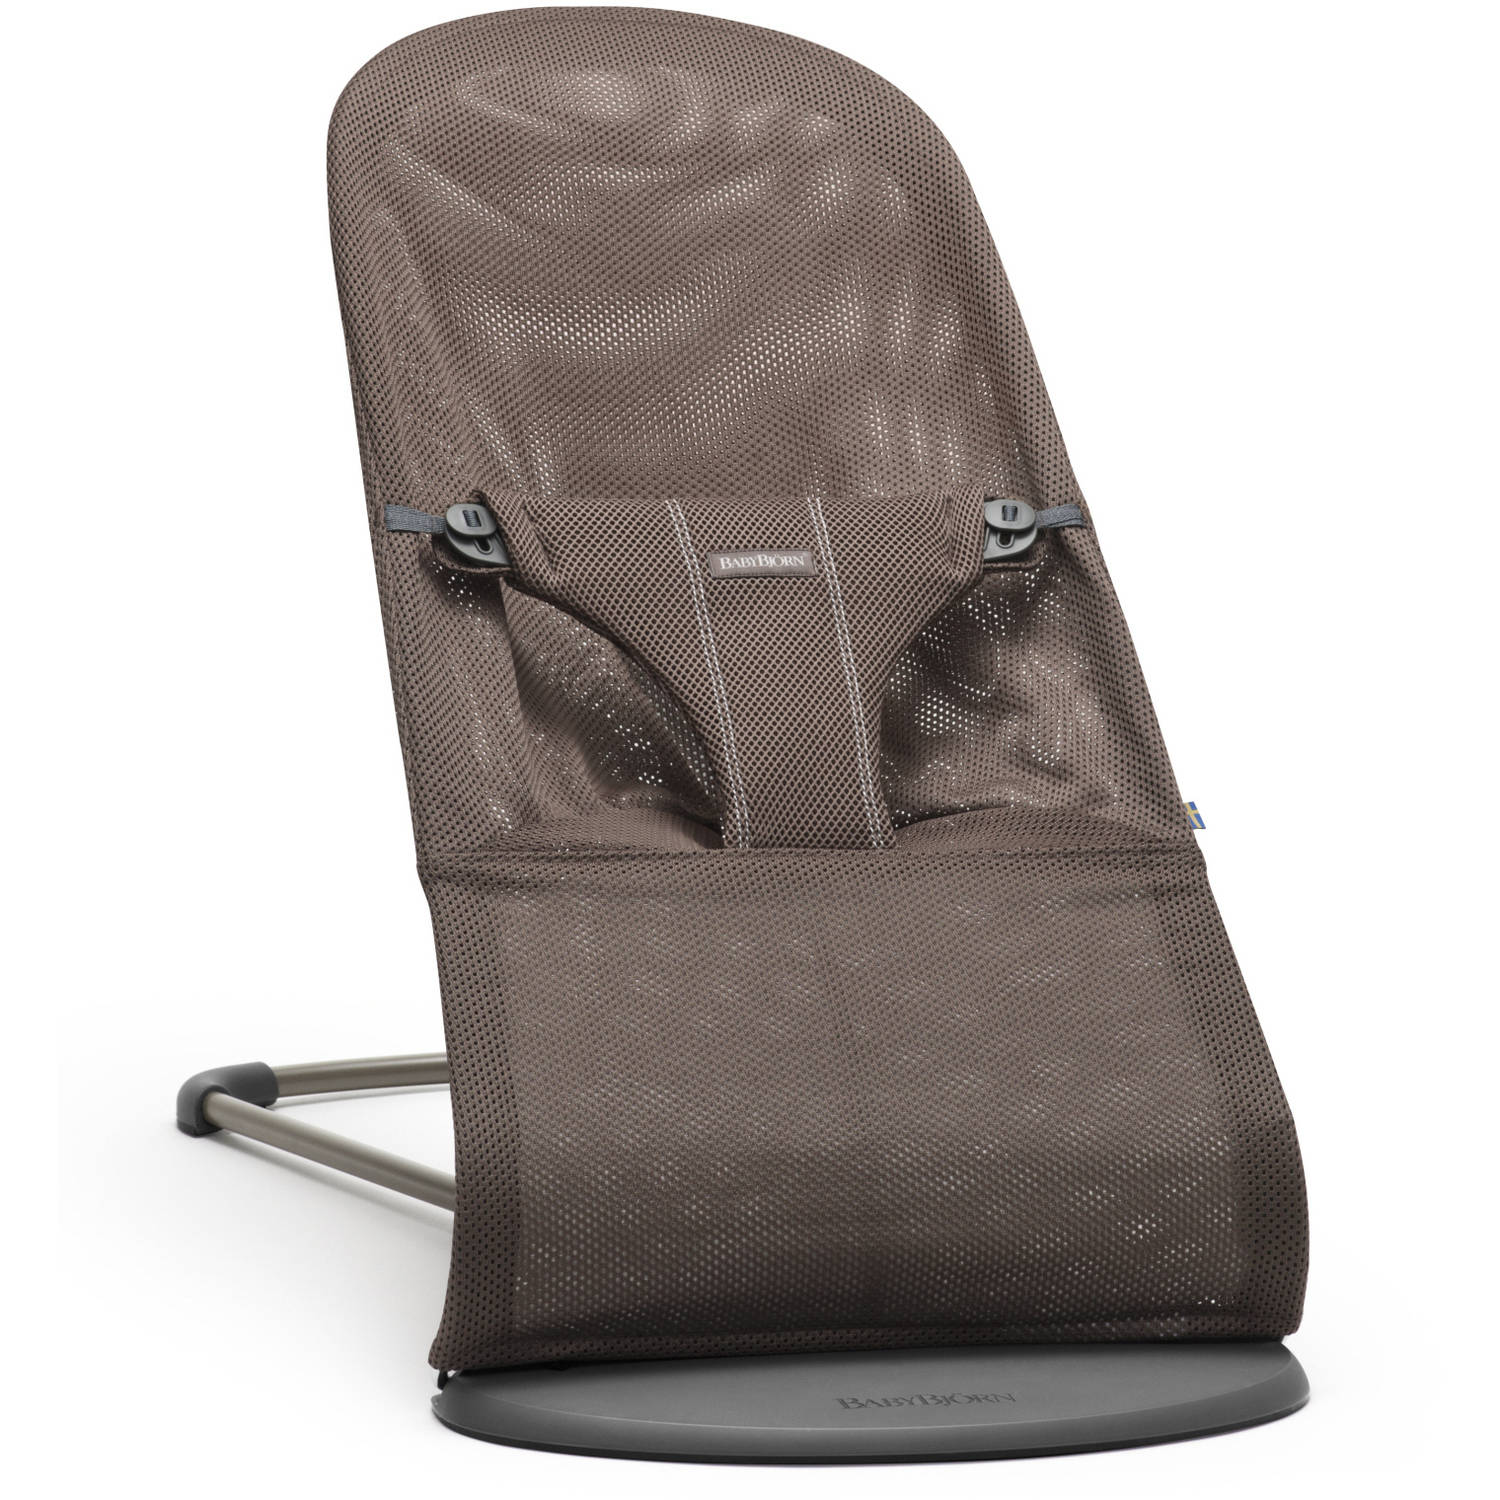 BabyBjorn Bouncer Bliss - Cocoa, Mesh